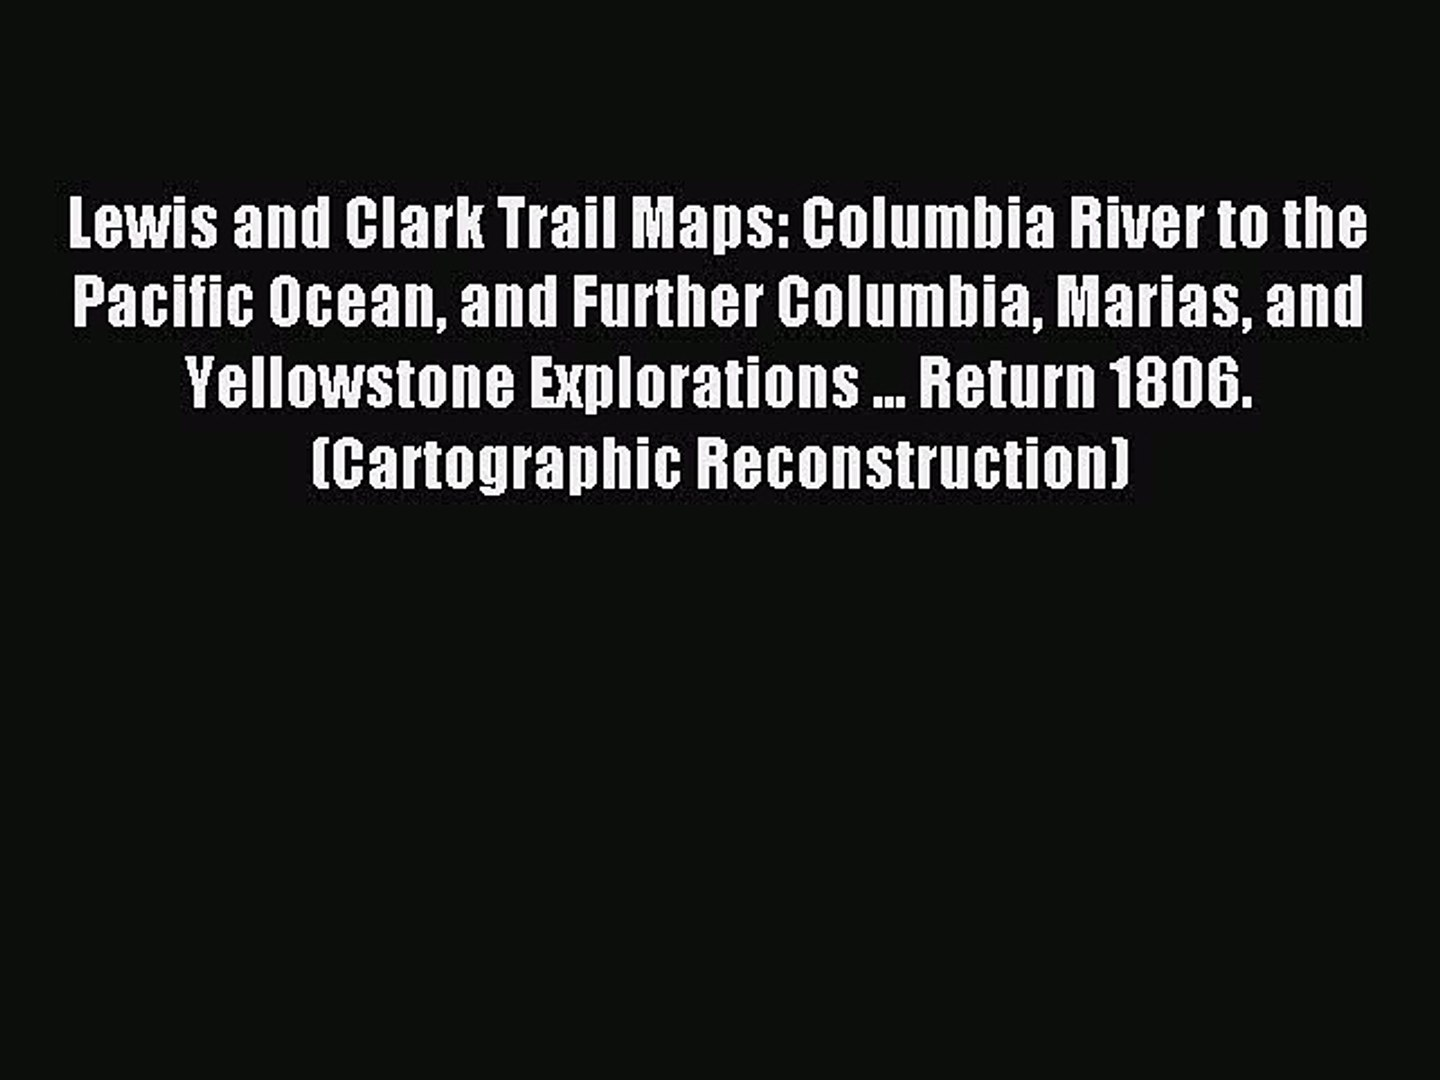 Read Lewis and Clark Trail Maps: Columbia River to the Pacific Ocean and Further Columbia Marias